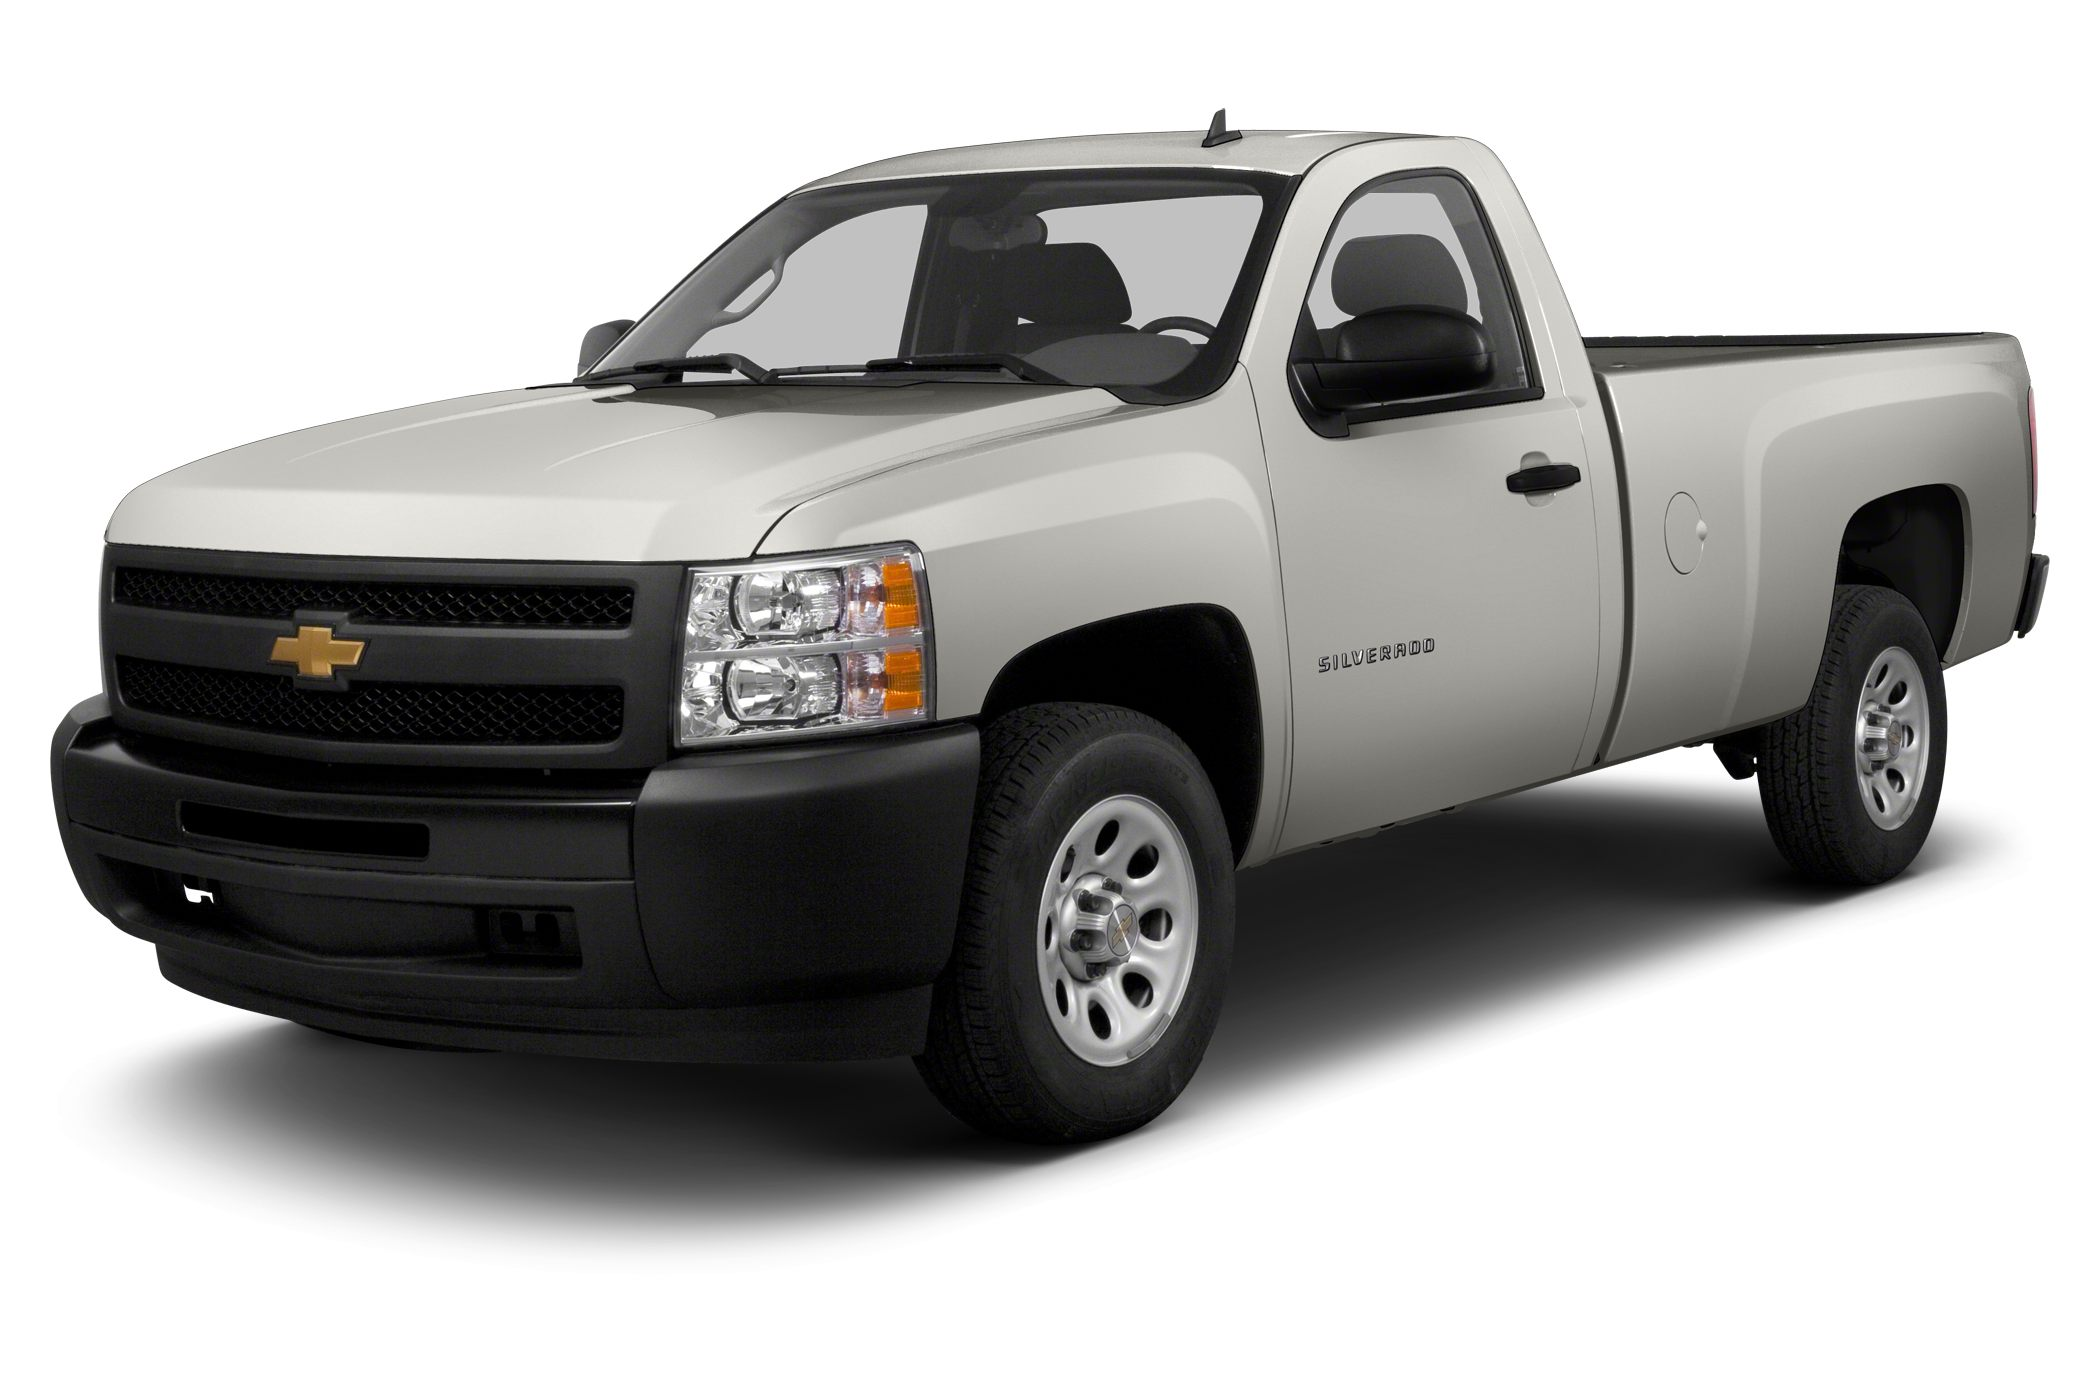 2013 Chevrolet Silverado 1500 Work Truck Regular Cab Pickup for sale in Claremore for $18,779 with 30,305 miles.